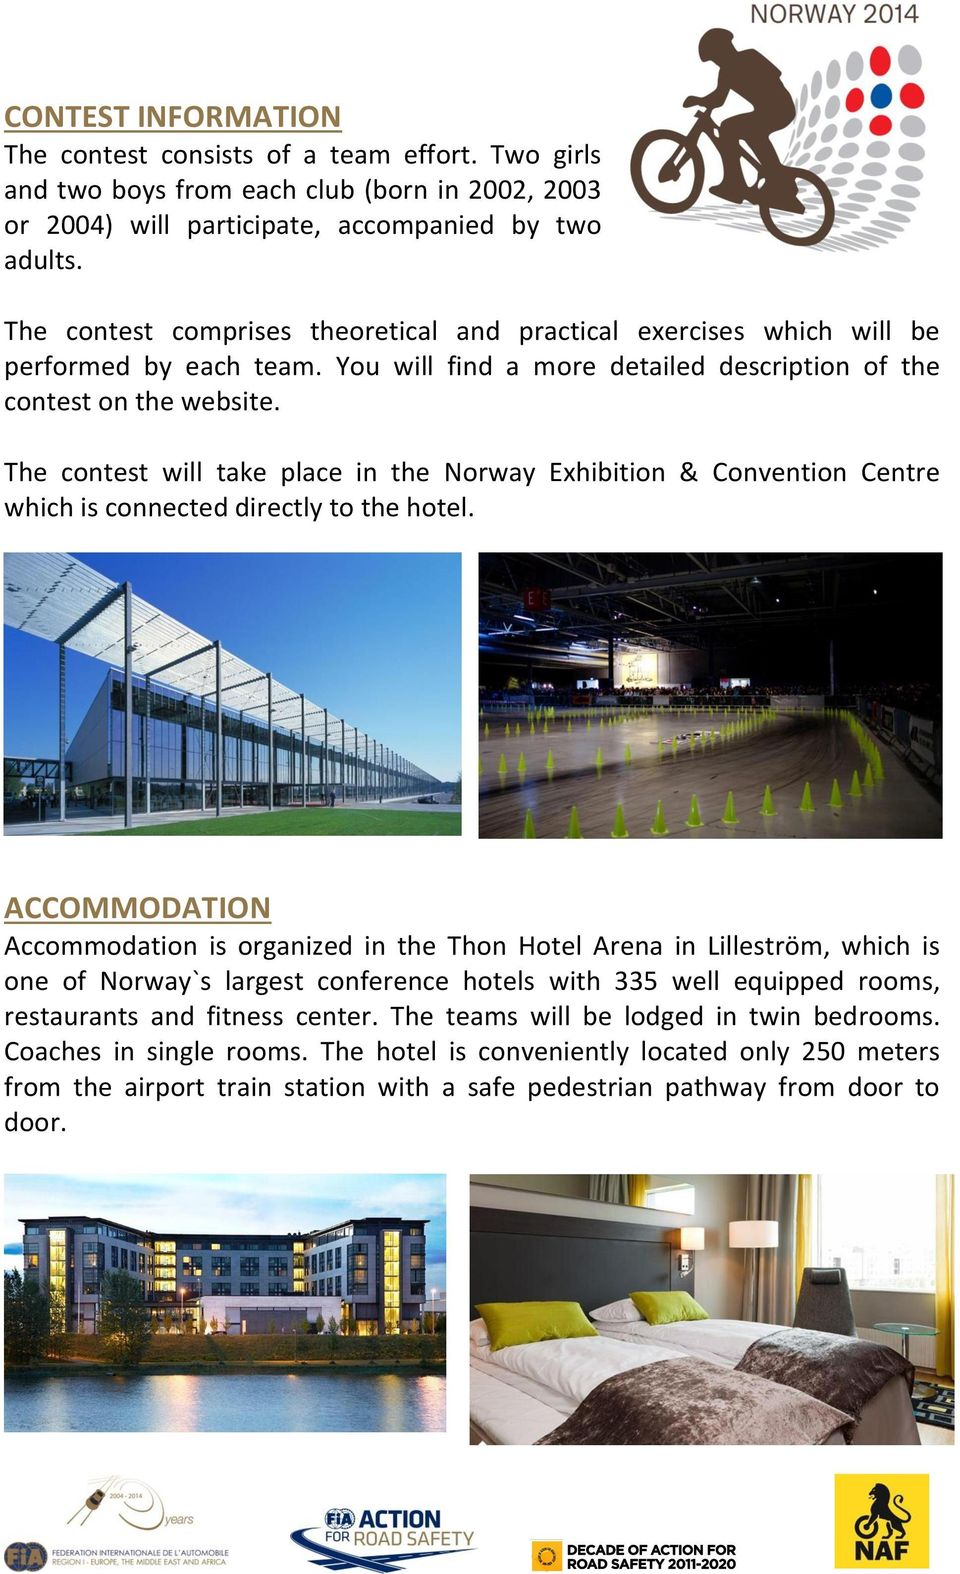 The contest will take place in the Norway Exhibition & Convention Centre which is connected directly to the hotel.